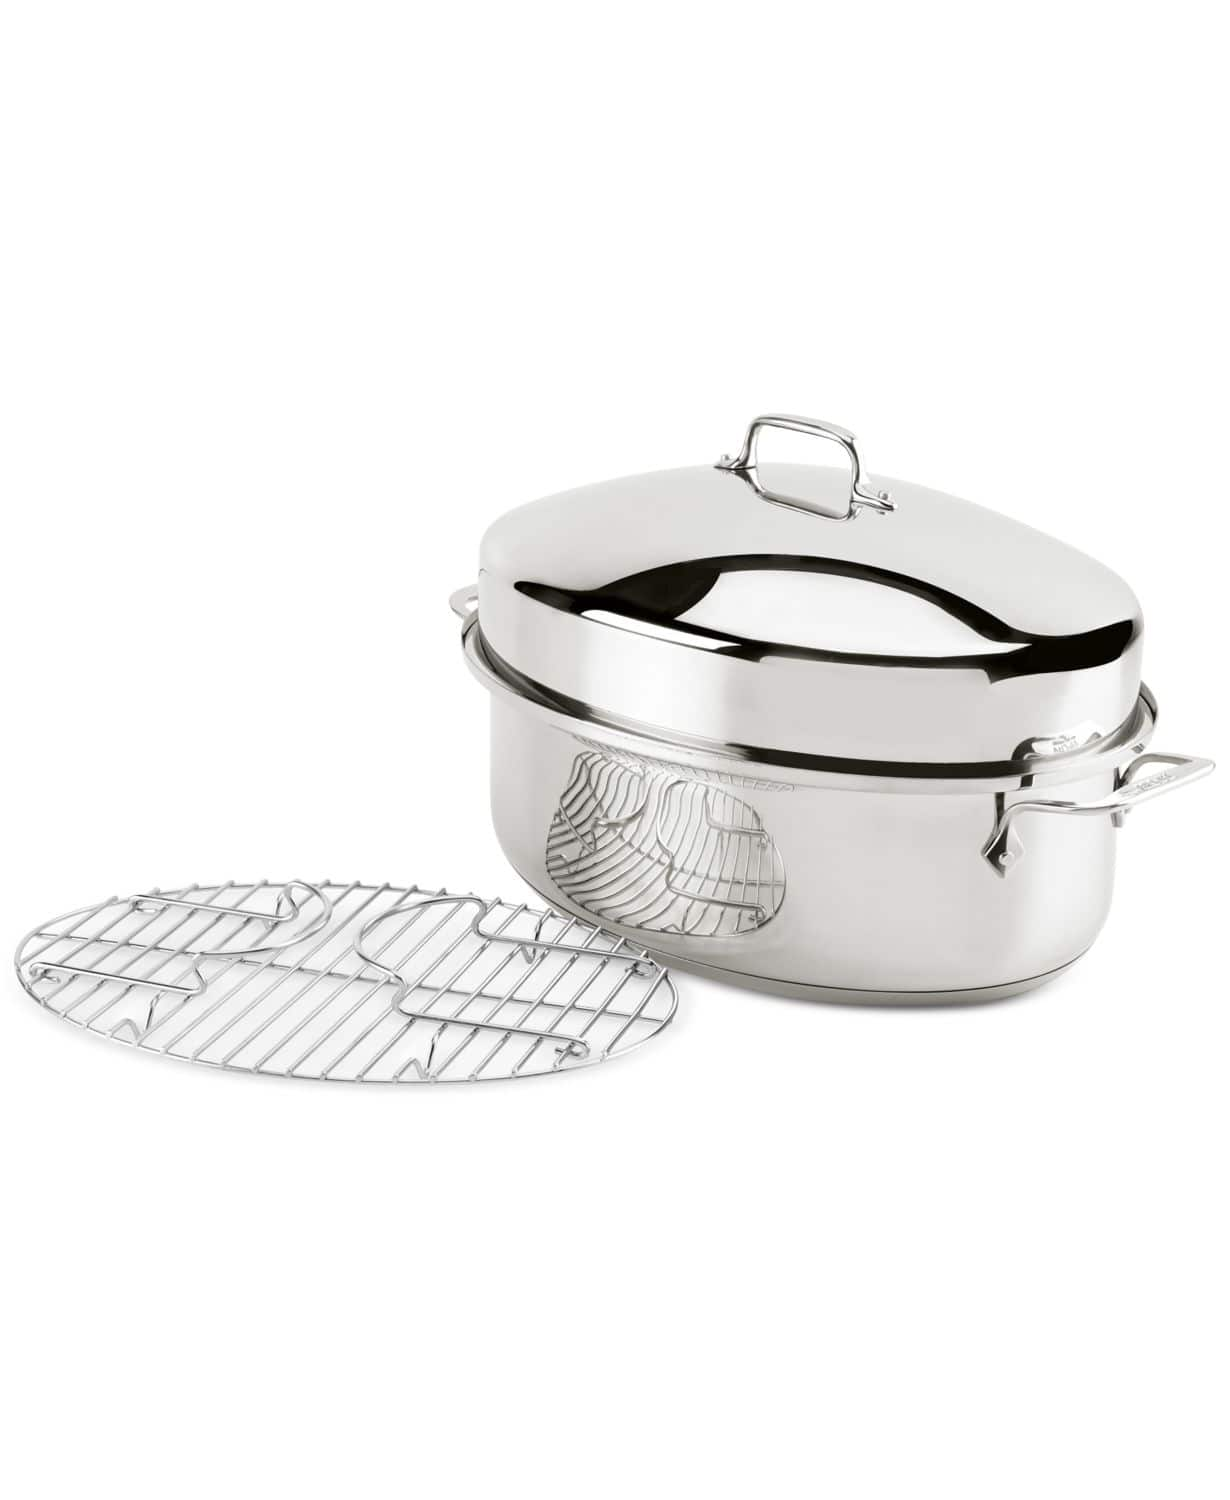 All-Clad Stainless Steel Oval Roaster & Rack $139.99 at Macys.